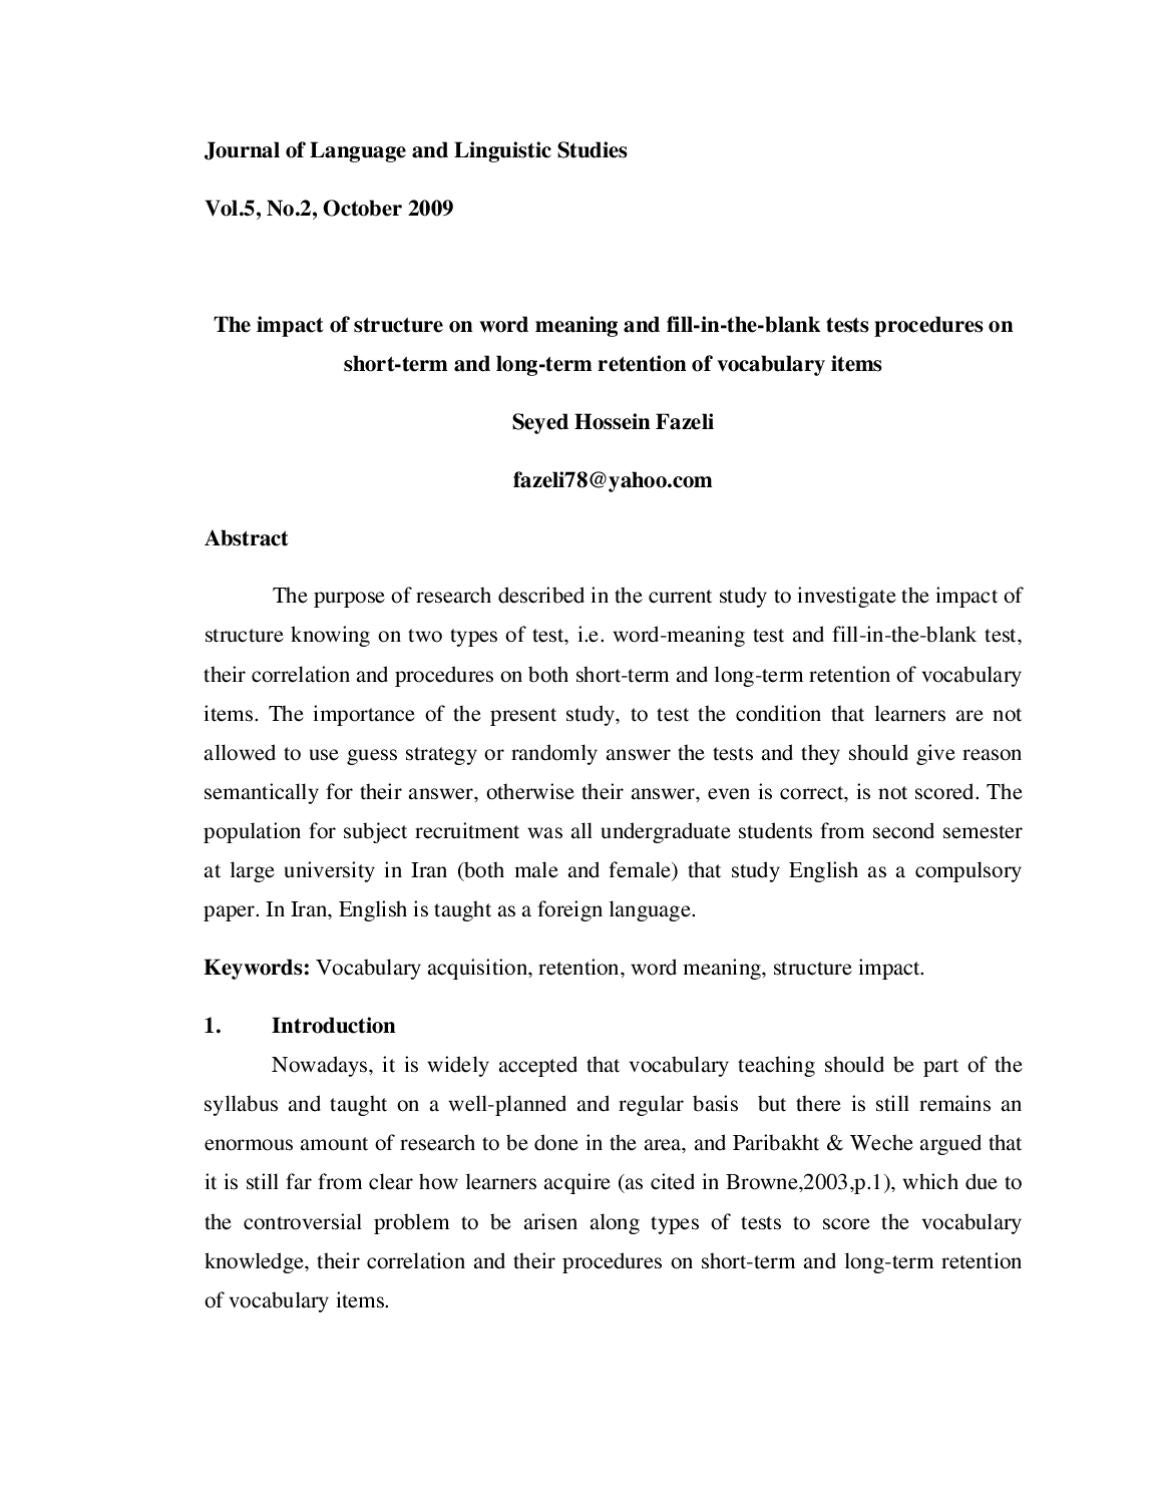 The impact of structure on word meaning and fill-in-the-blank tests  procedures